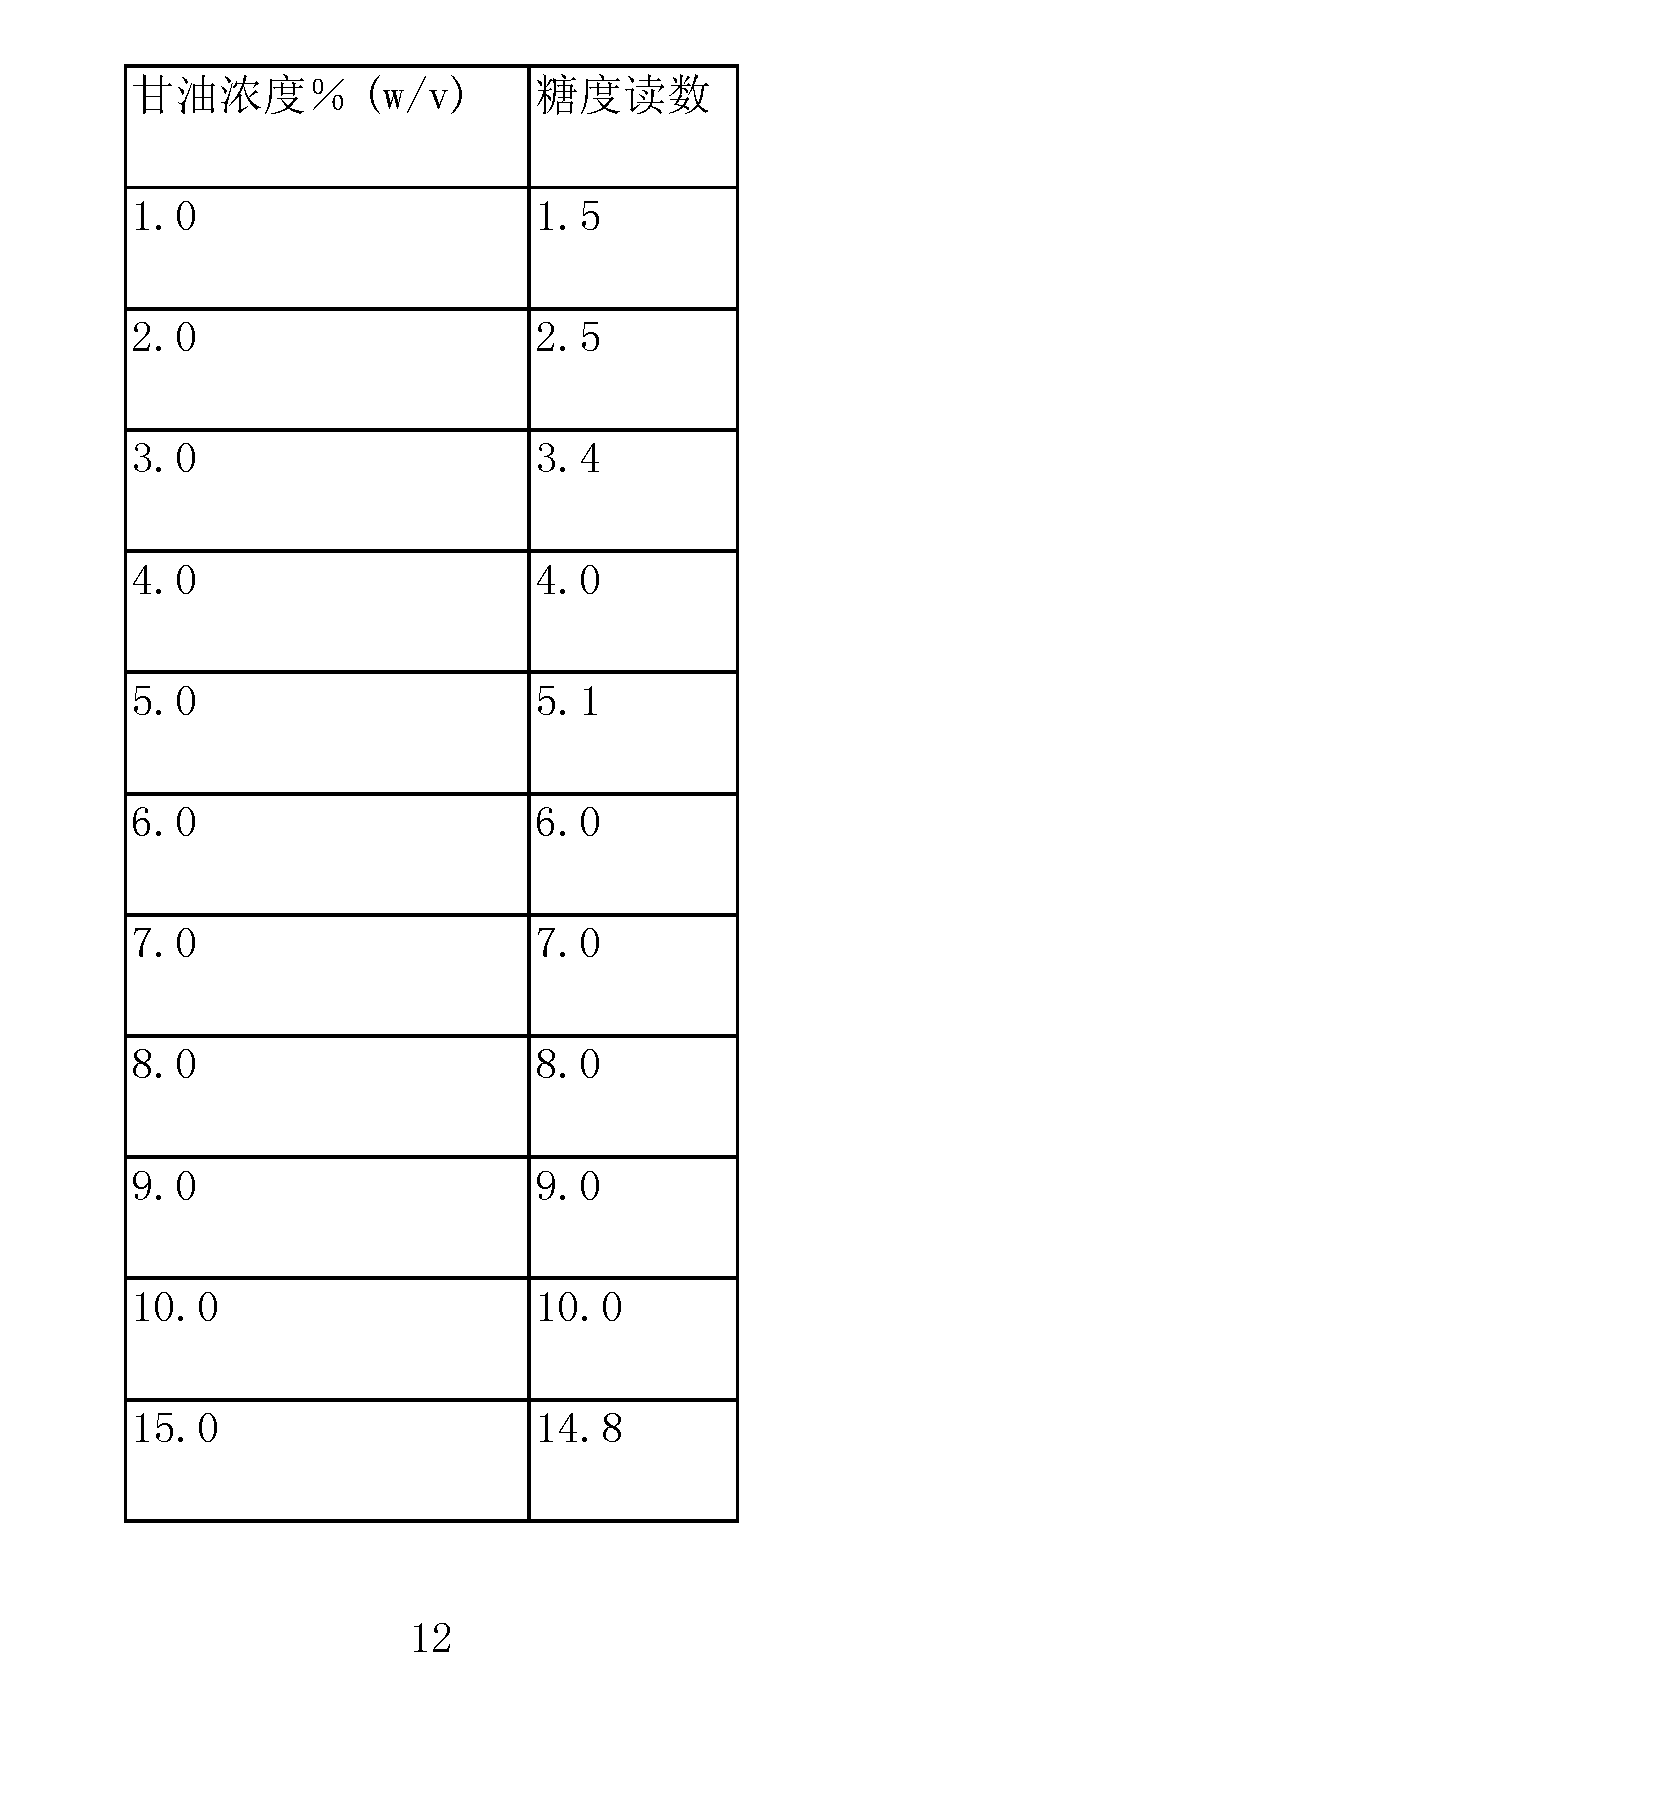 CN A Method of storing produce and producing a beverage